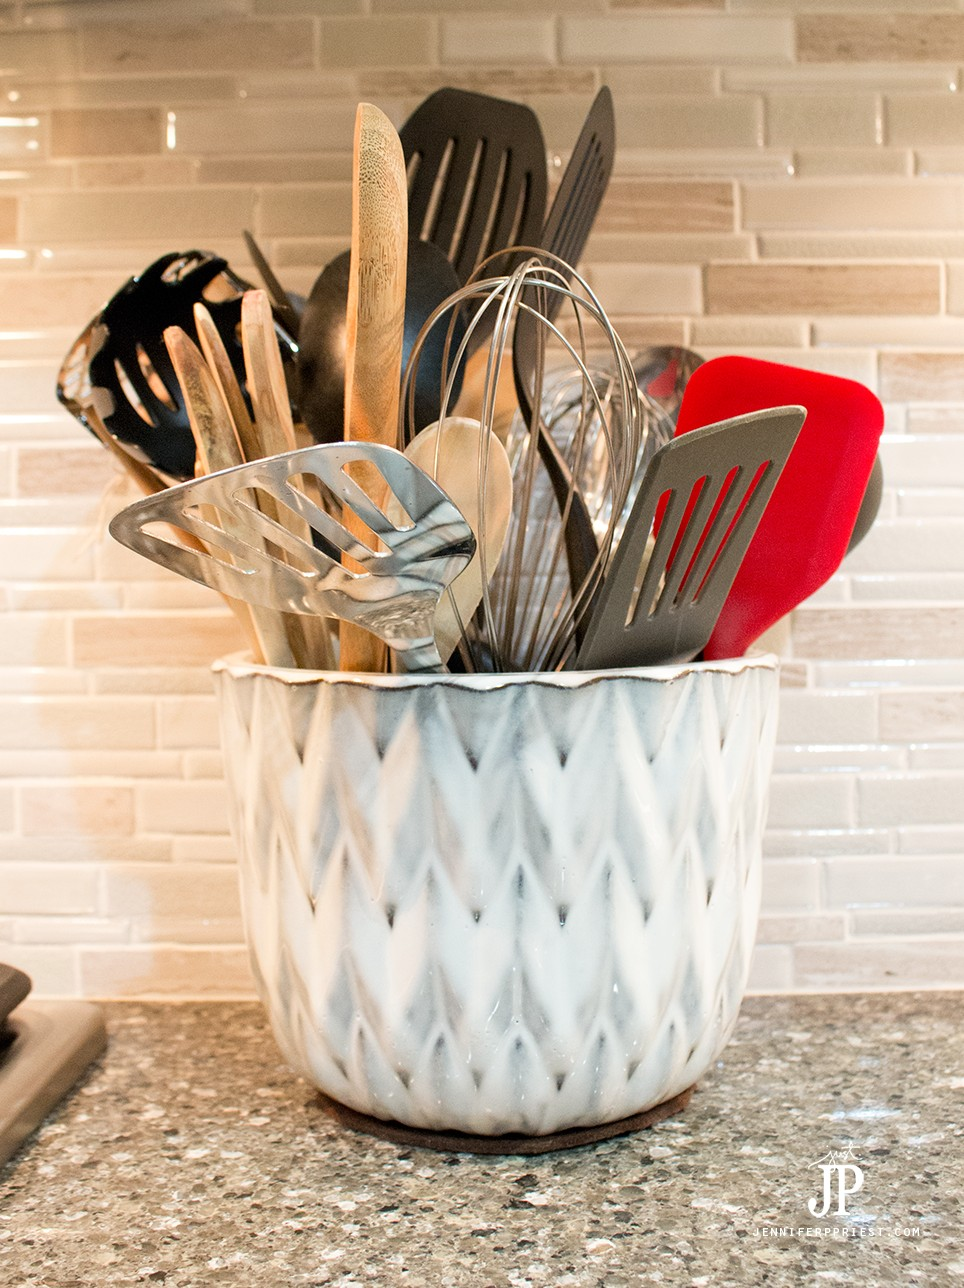 Use-Flower-Pot-to-Hold-Kitchen-Utensils